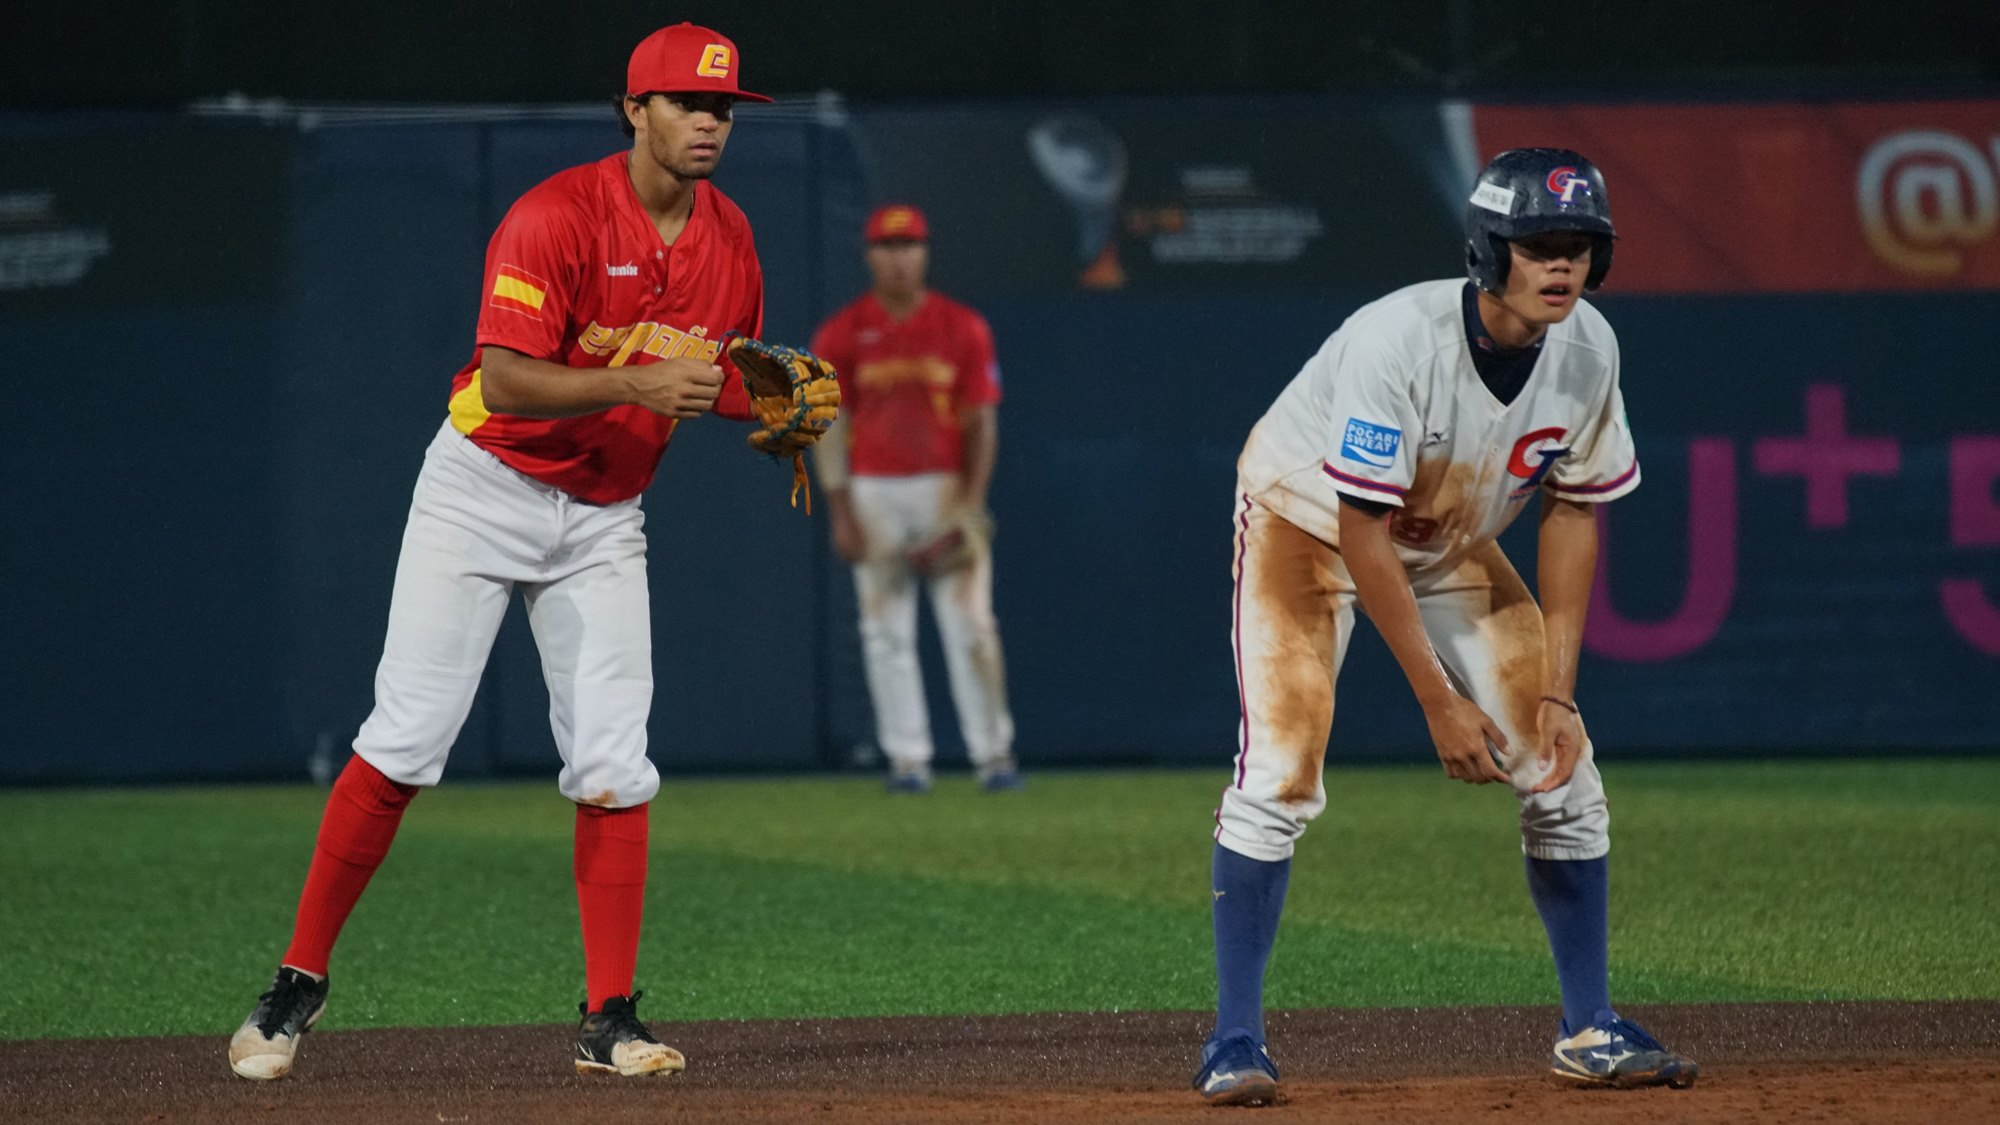 It looked like an easy night for Chinese Taipei